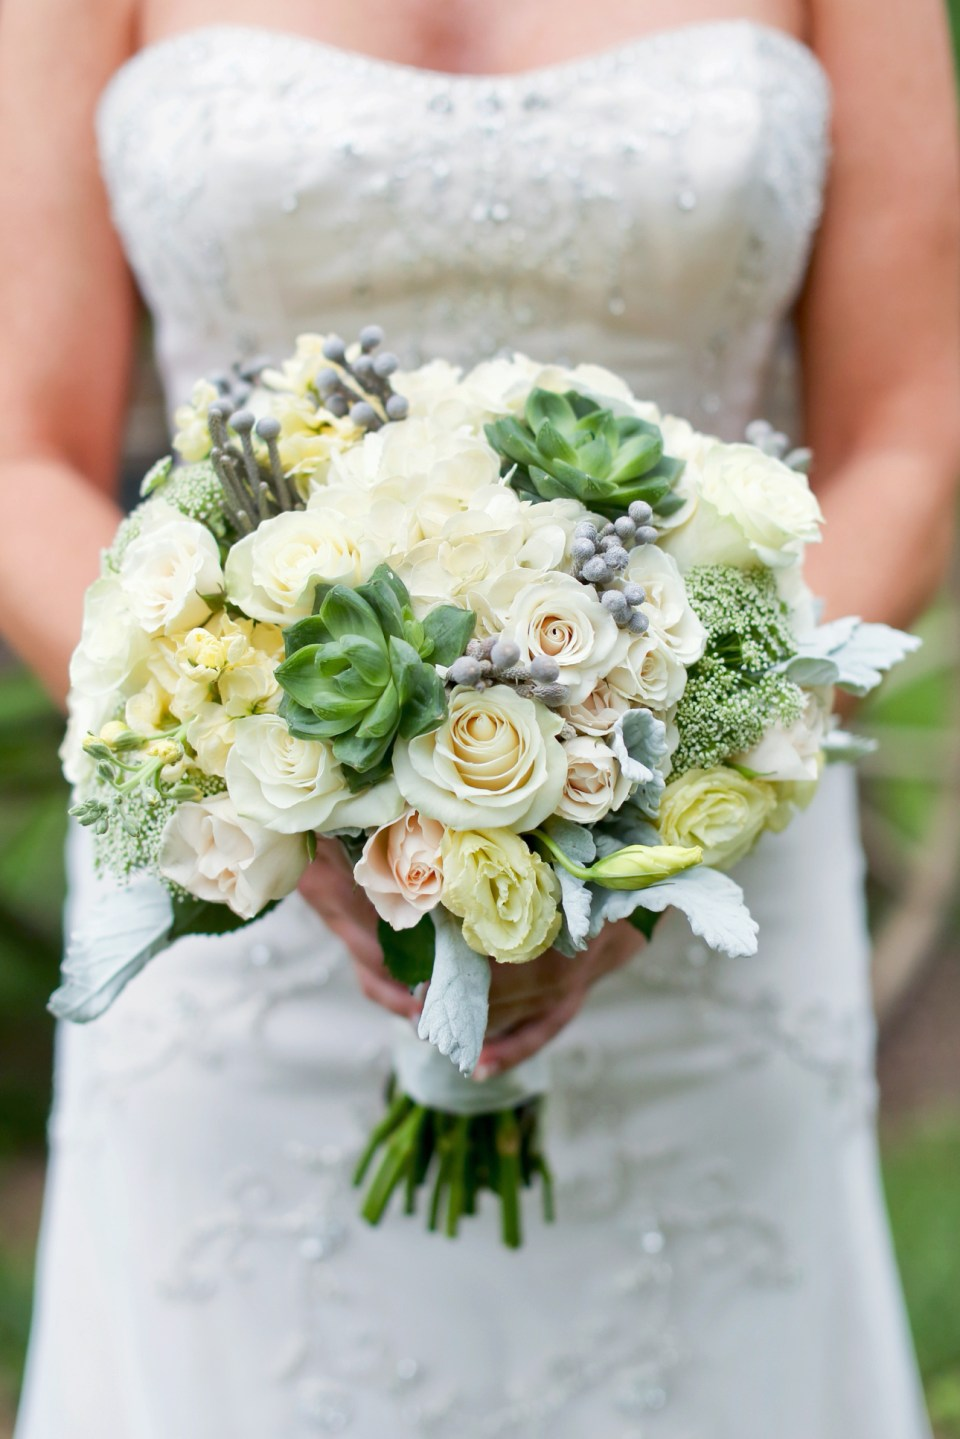 Wedding-Bouquet-Inspiration-Flowers-Bridal-Bridesmaids371